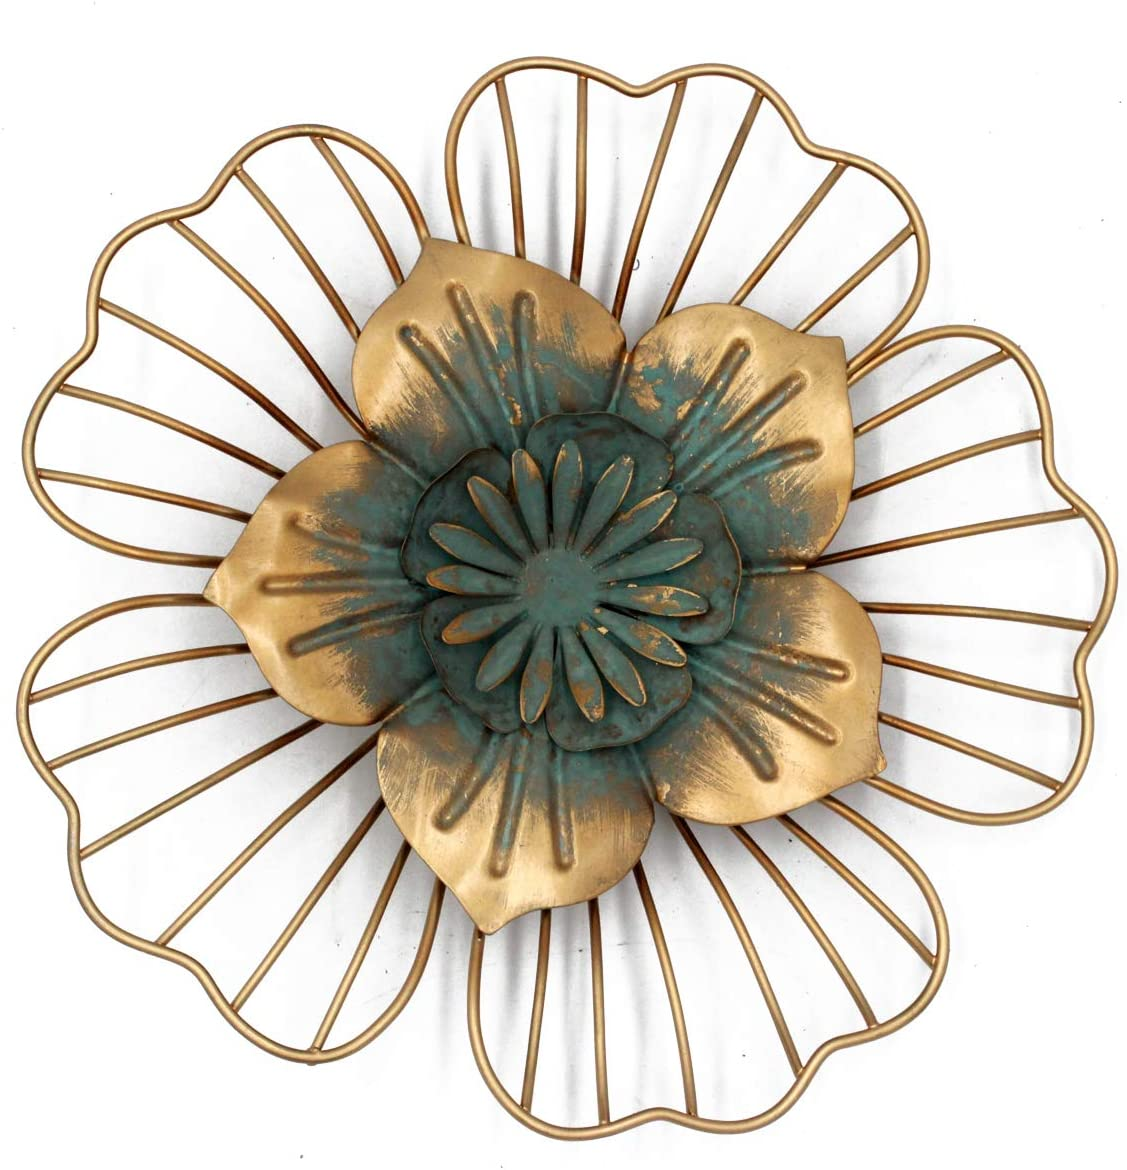 Golden Floral Wall Decoration Metal Flower Wall Decor 9.75x1.5x9.75 inches